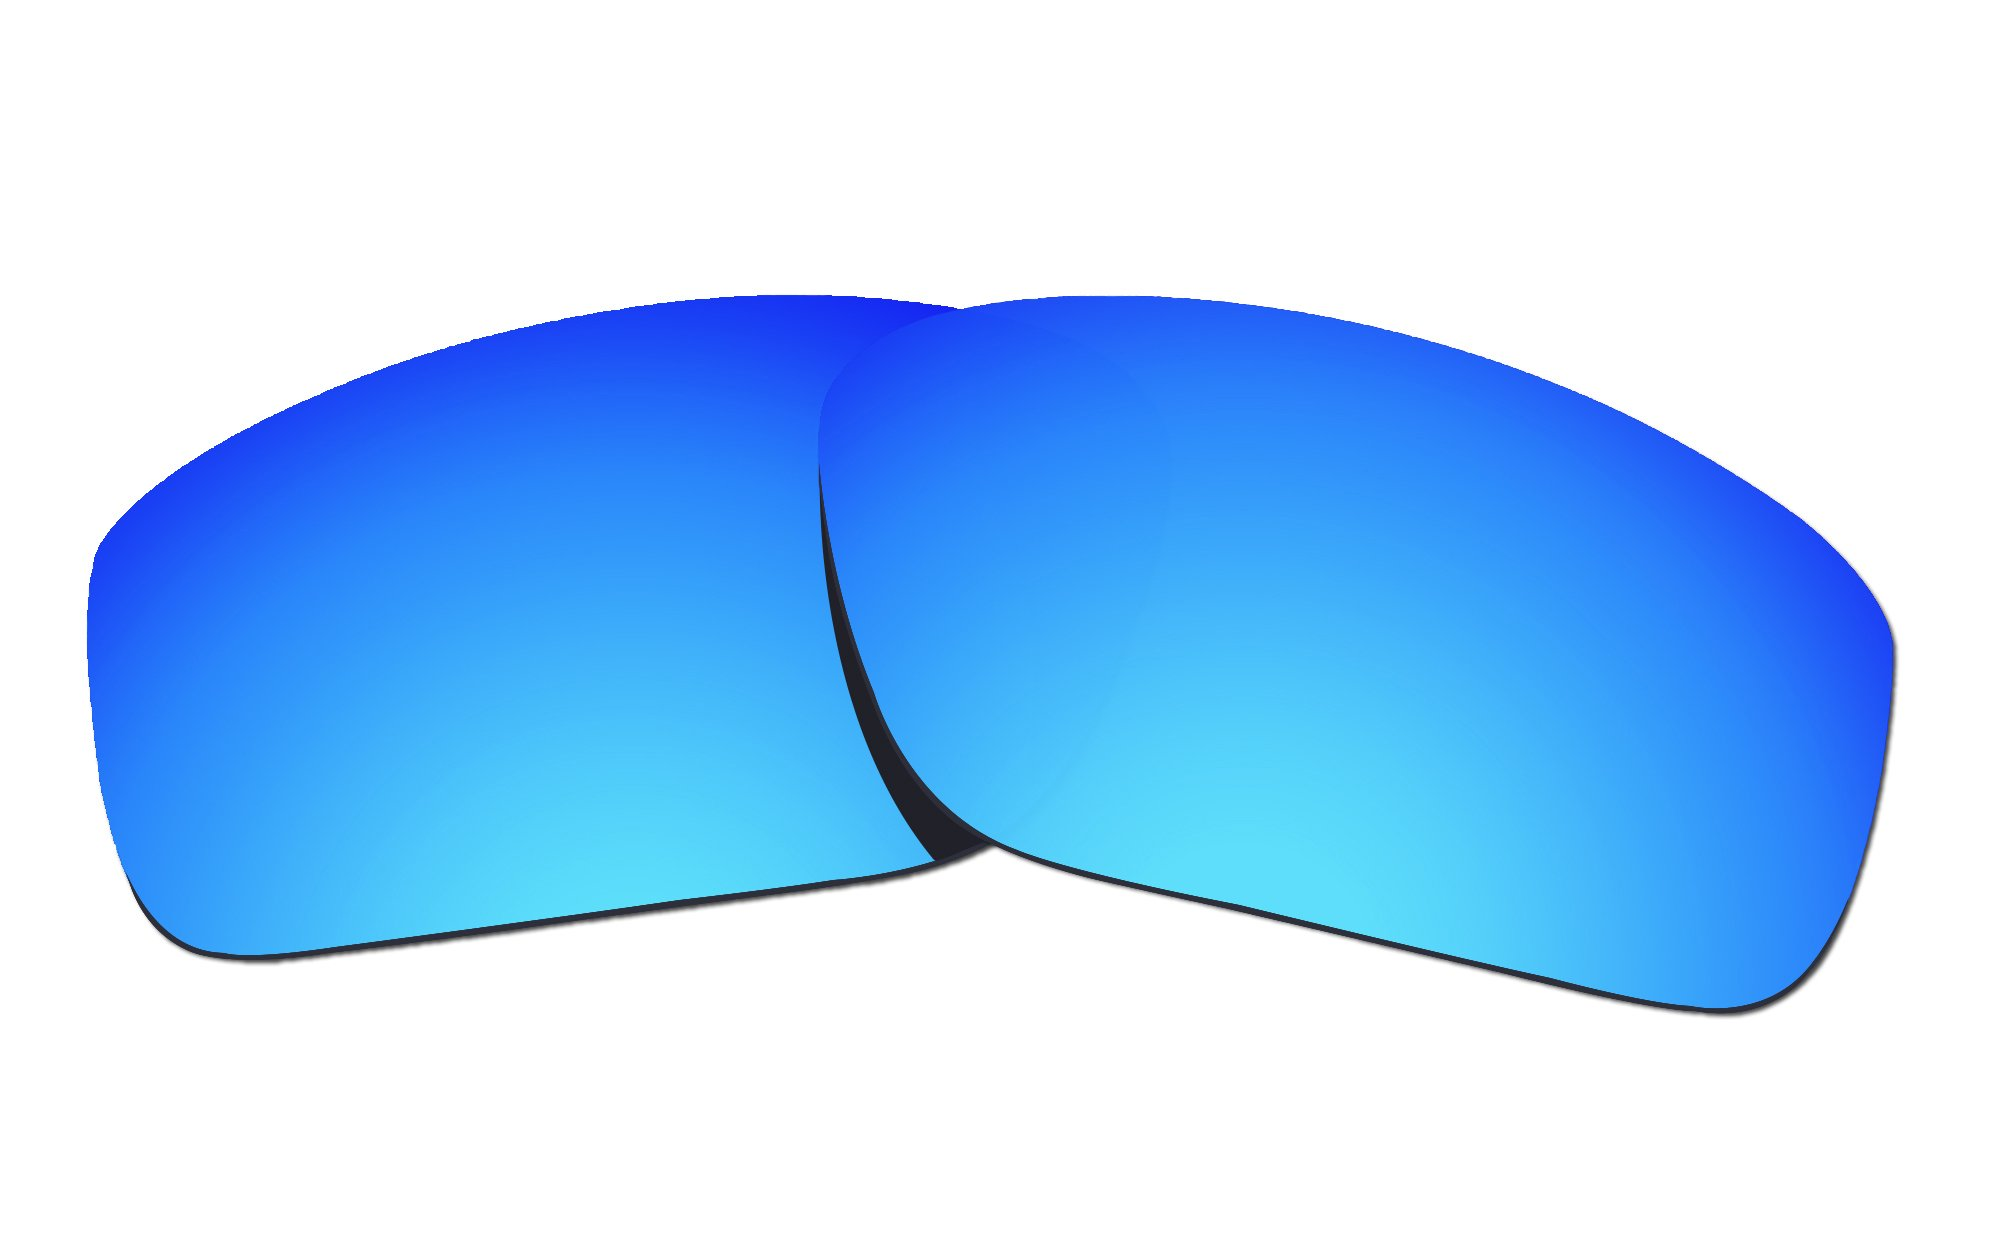 COLOR STAY LENSES 2.0mm Thickness Polarized Replacement Lenses for Oakley Straightlink OO9331 Blue Mirror Coatings by COLOR STAY LENSES